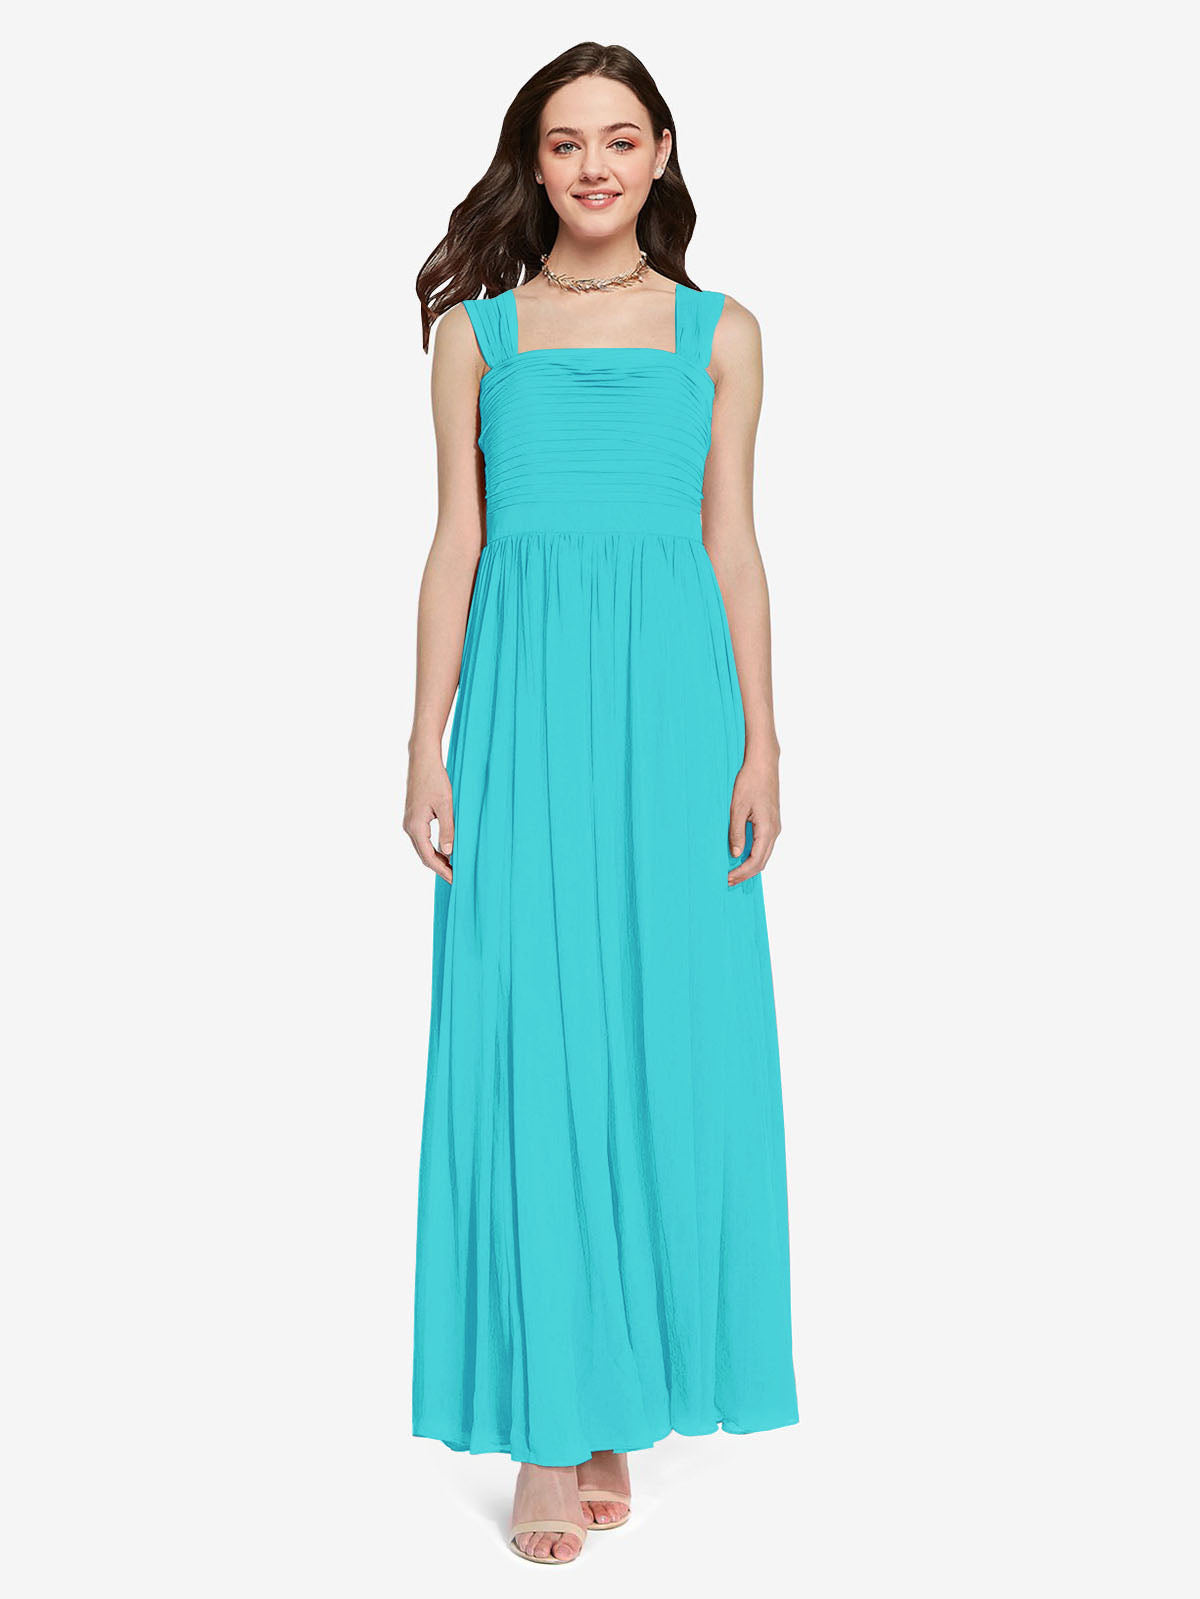 Long A-Line Square Sleeveless Aqua Chiffon Bridesmaid Dress Aldridge